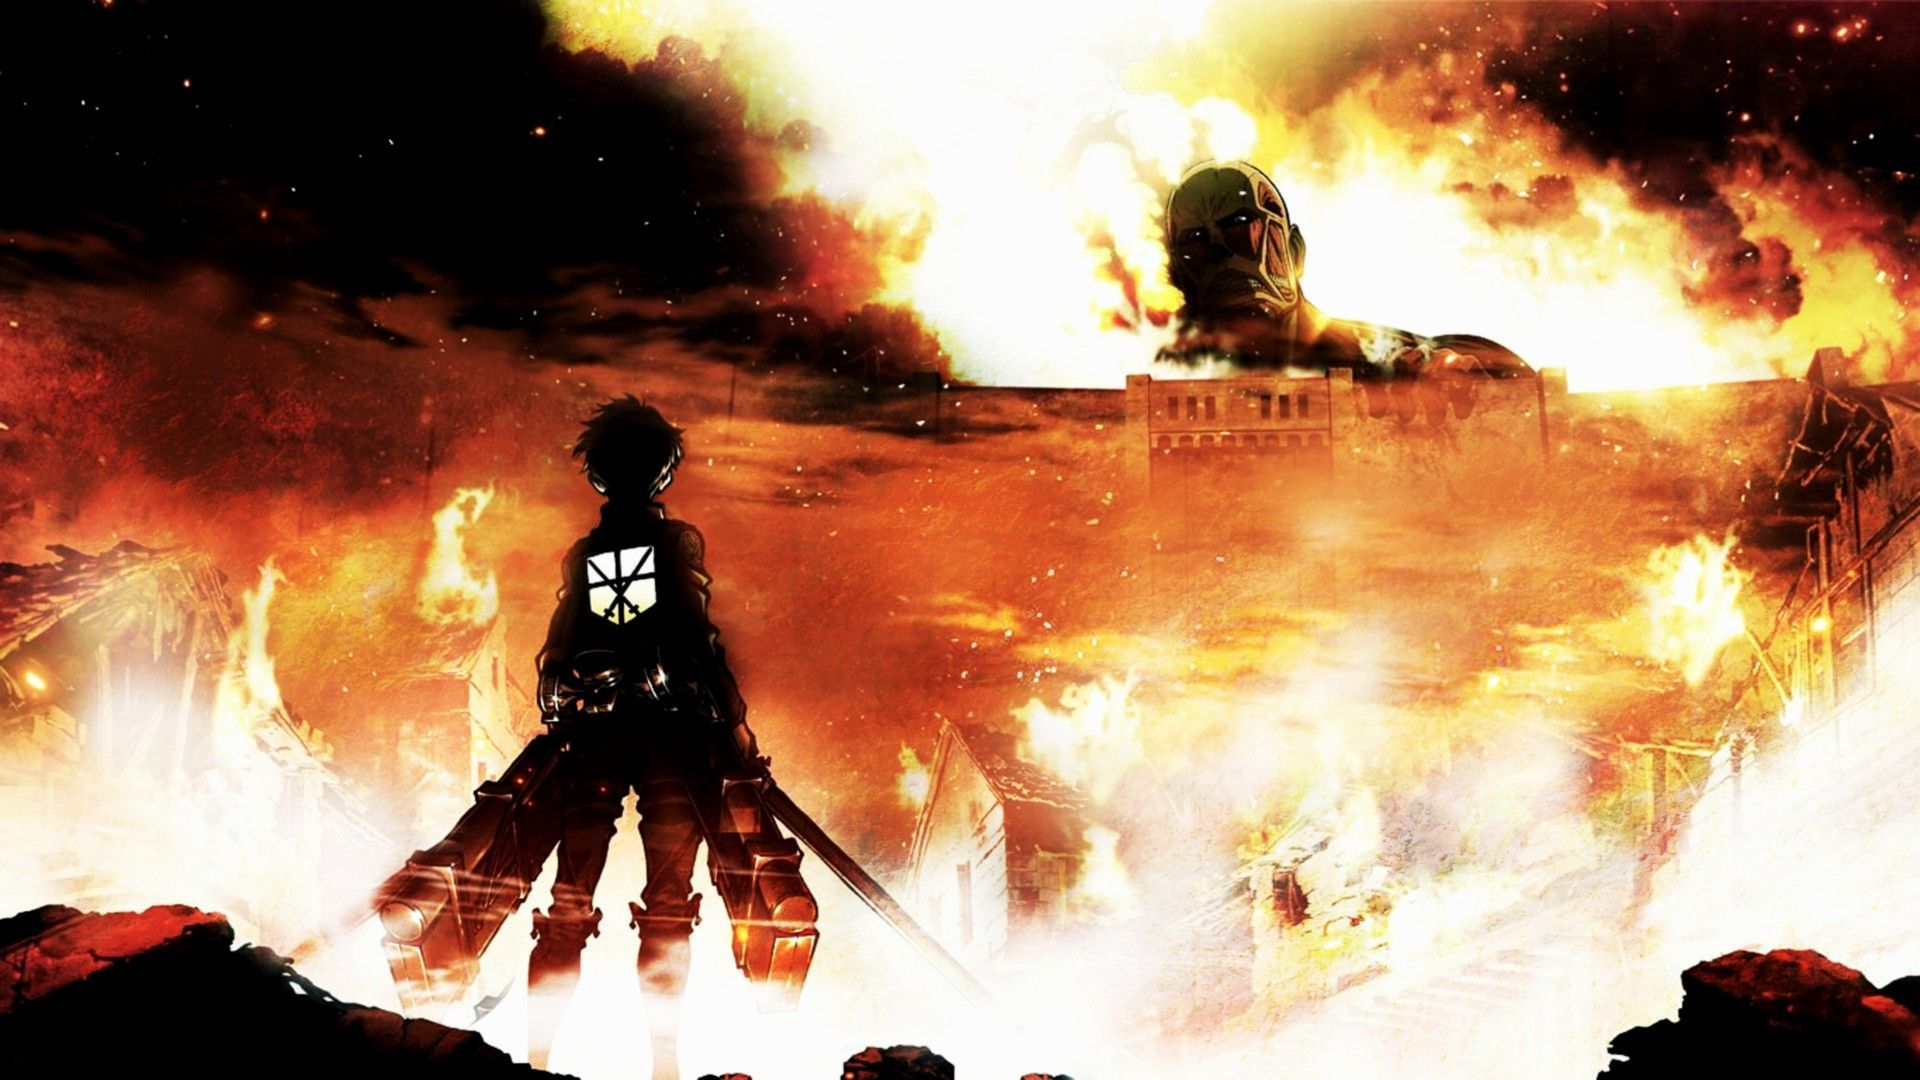 Attack On Titan Wallpaper 1920x1080